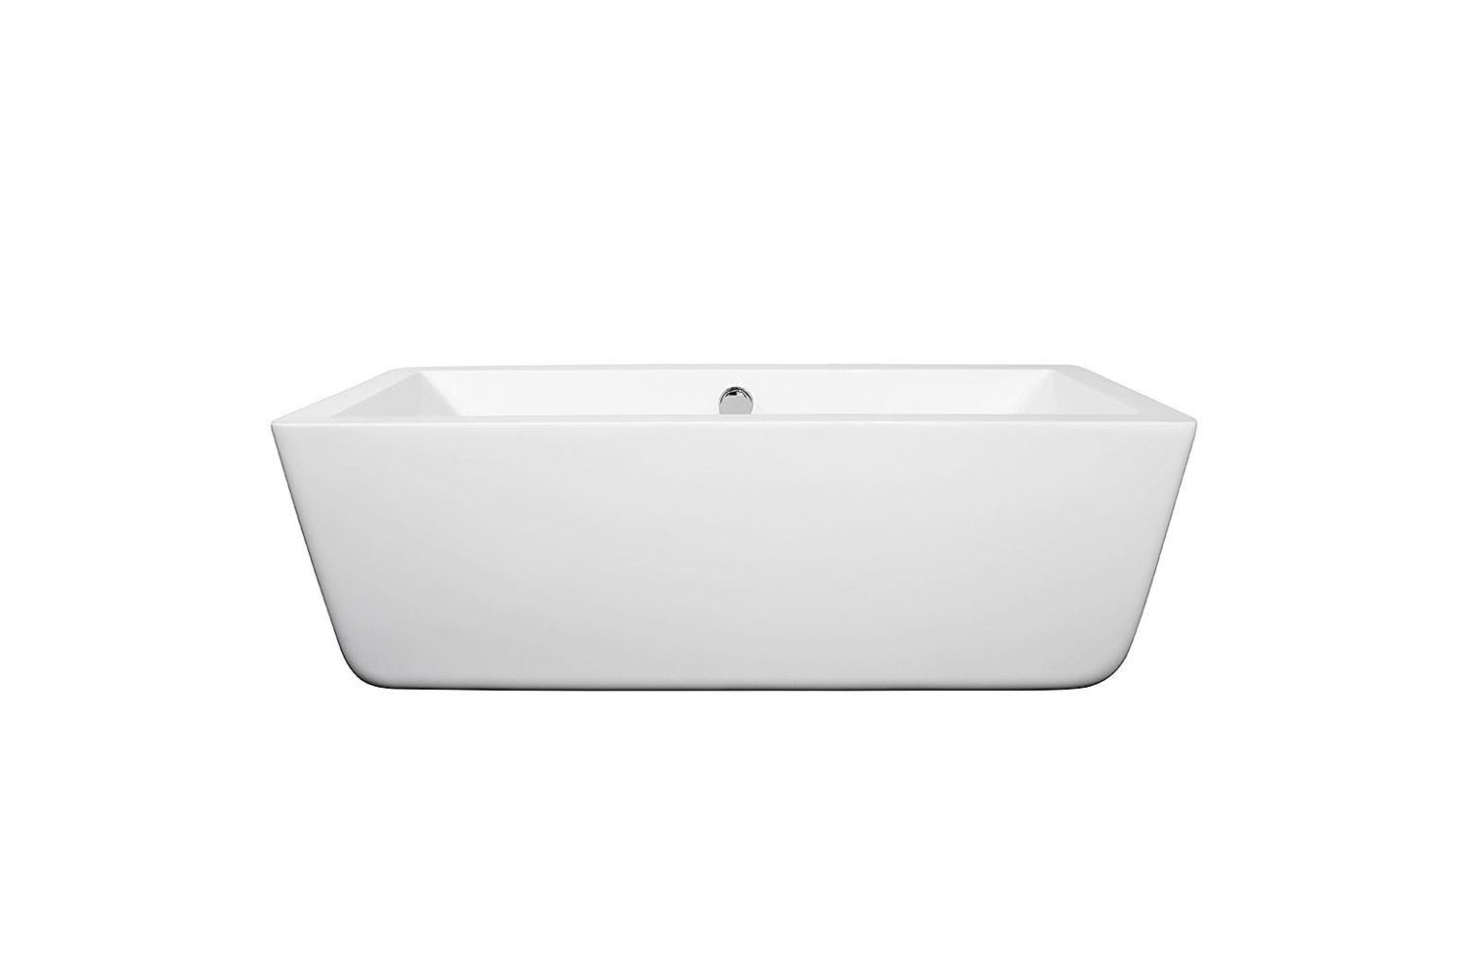 To fit a tub into the small end of the bathroom, Greif special-ordered the5.58-Foot Wyndham Collection Laura Soaking Tub for $948.99 at Home Depot.